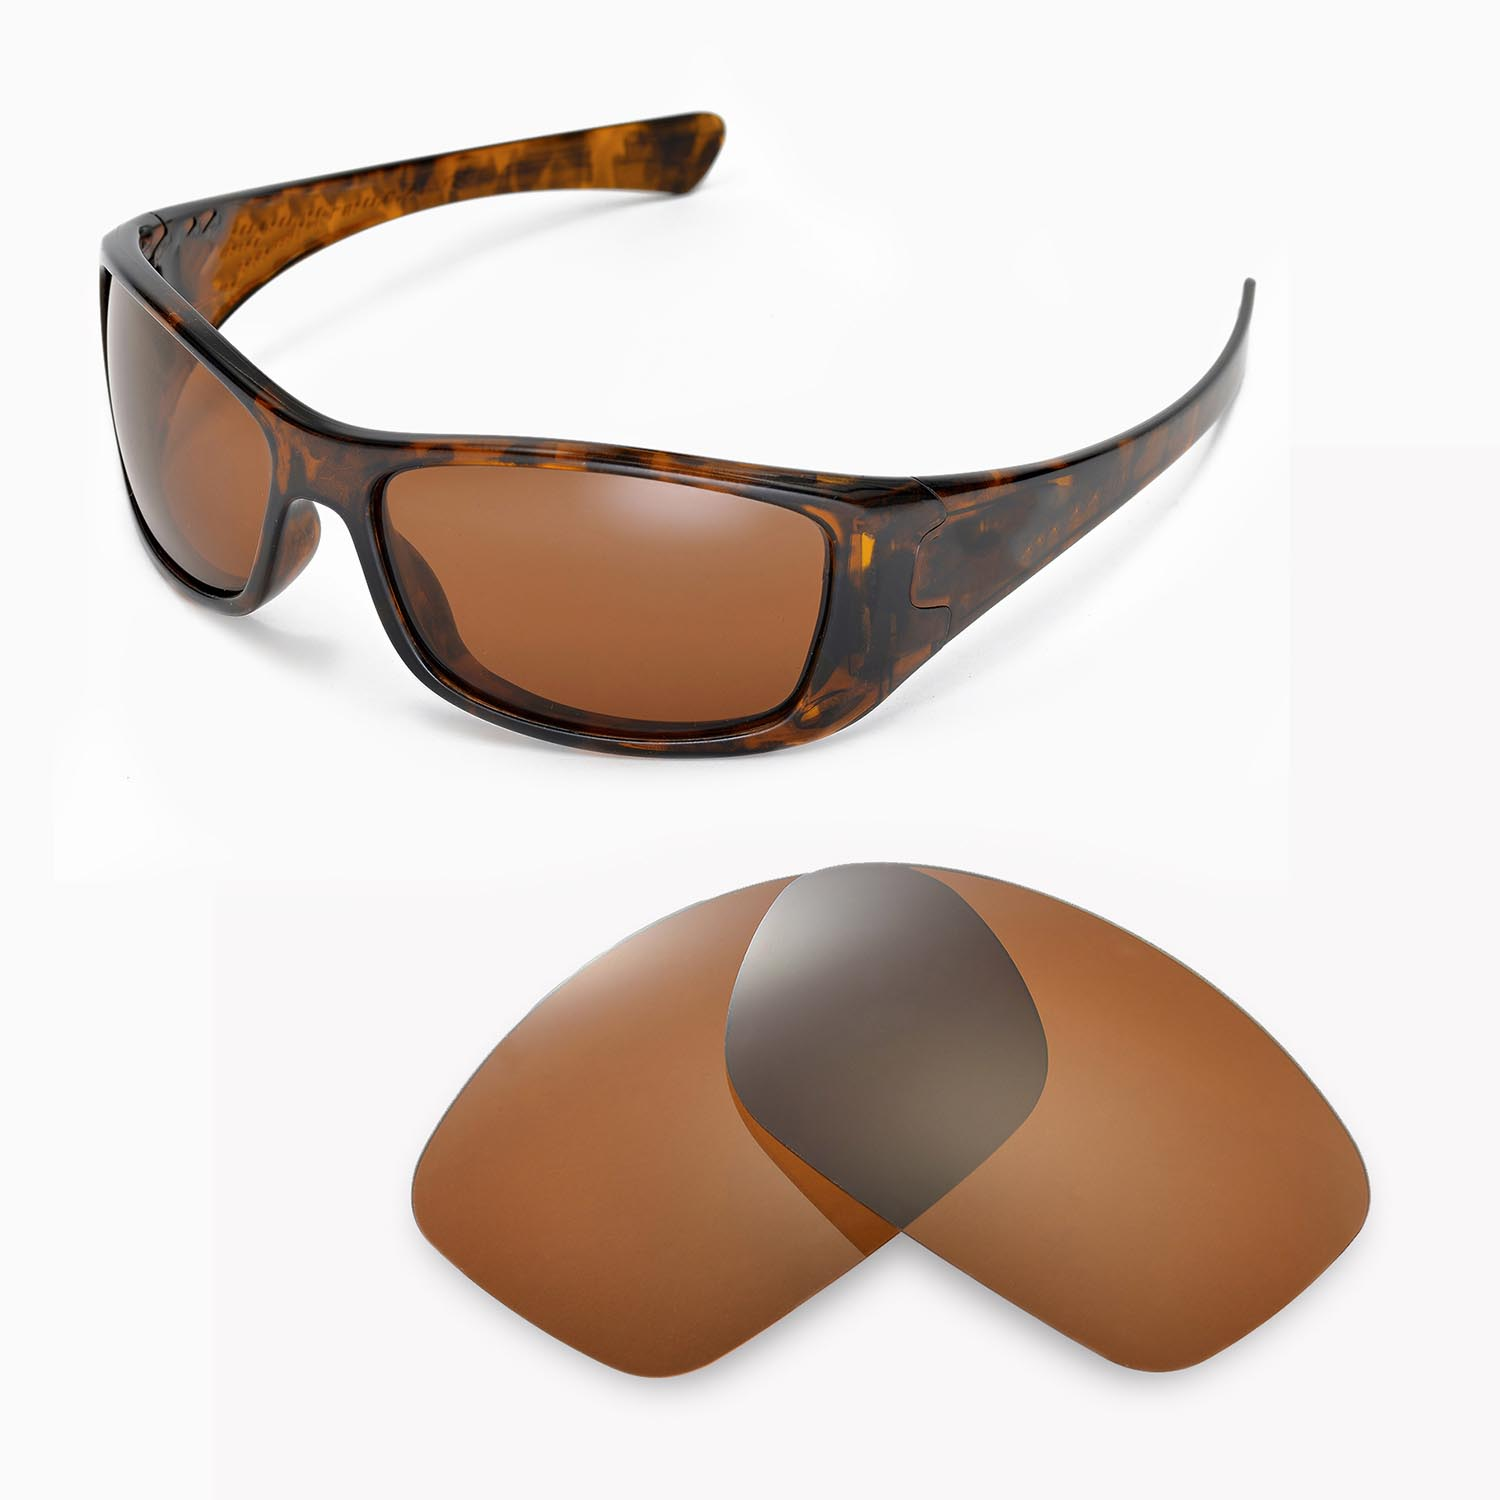 08ab638e8ab Details about New Walleva Polarized Brown Replacement Lenses For Oakley  Hijinx Sunglasses